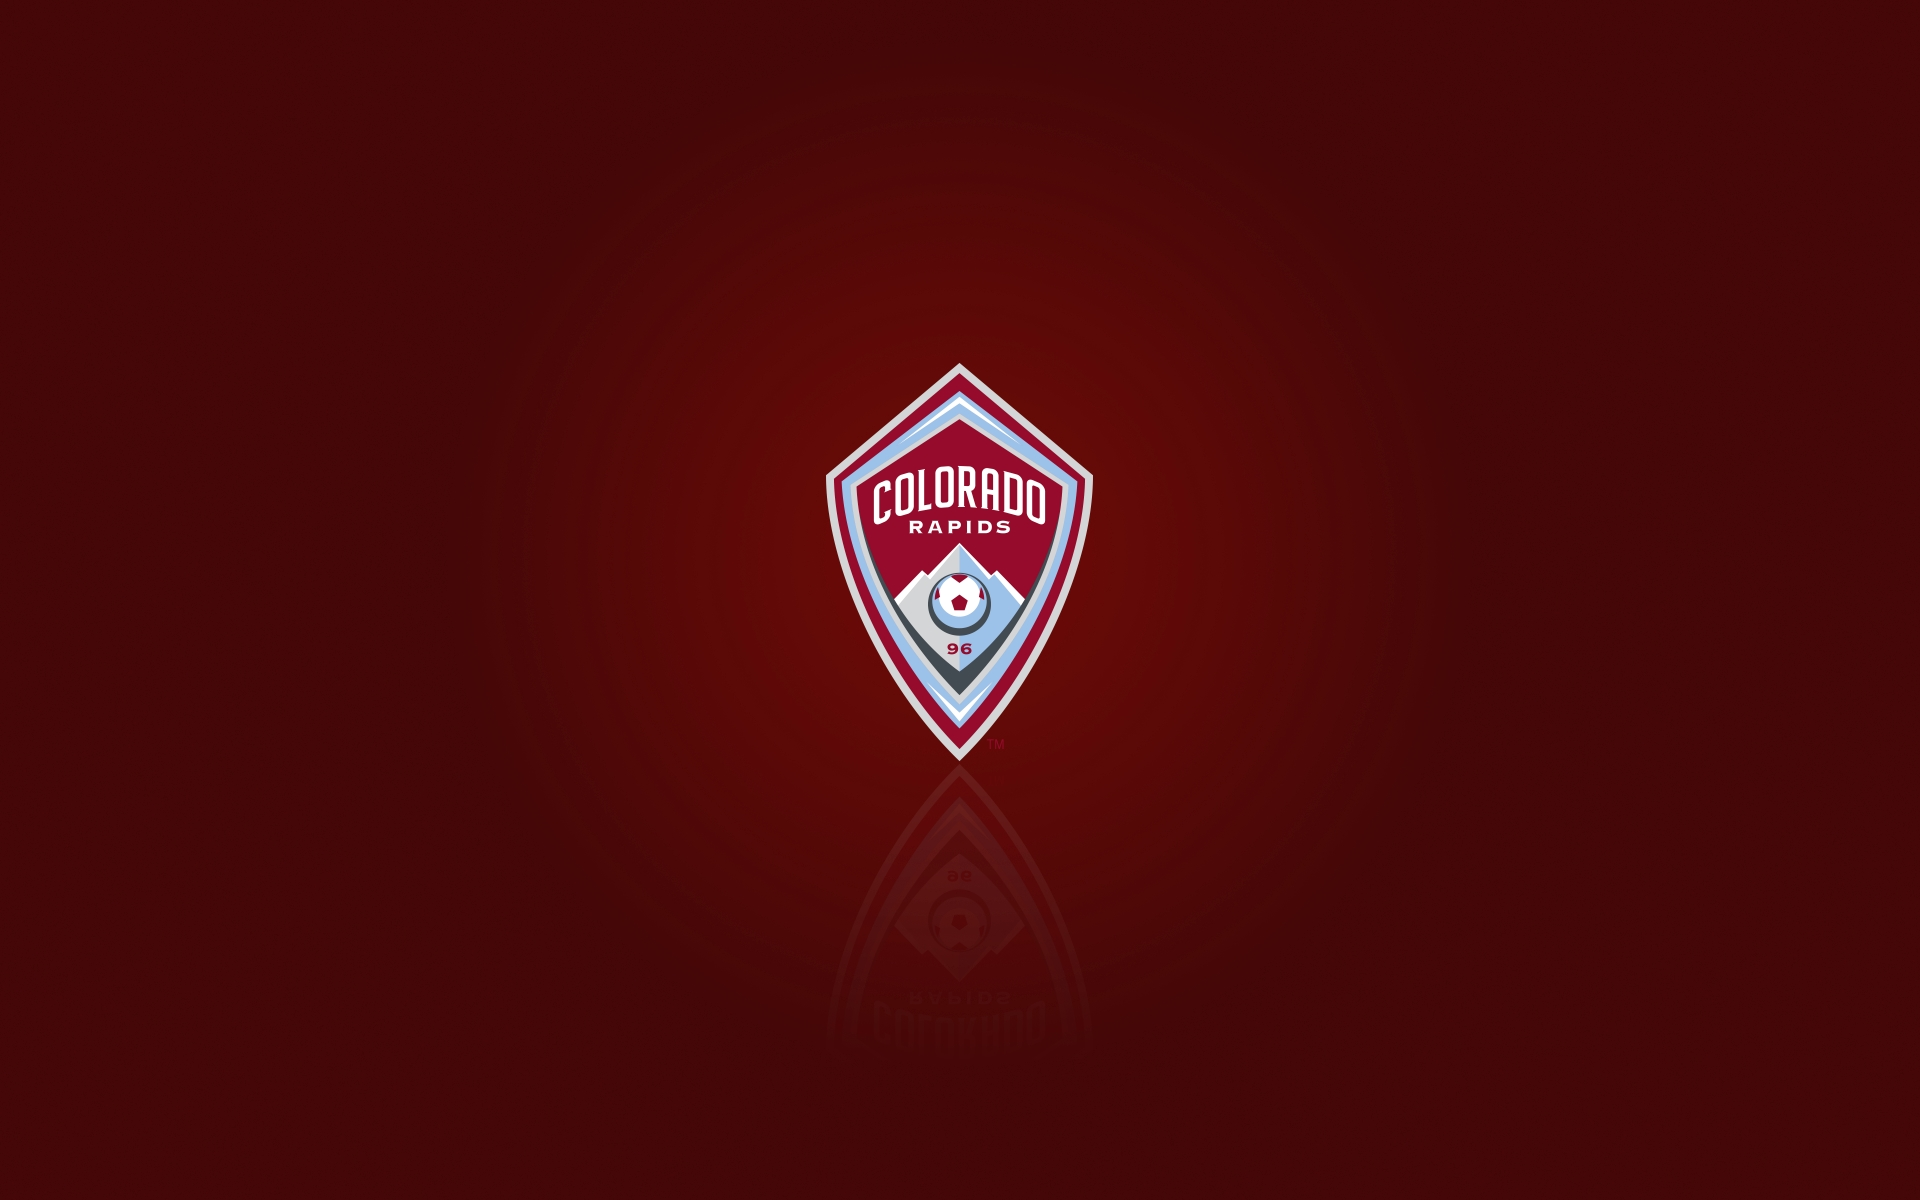 MLS club Colorado Rapids desktop background and widescreen HD wallpaper  with logo 1920x1200 - Colorado Rapids Logo Vector PNG